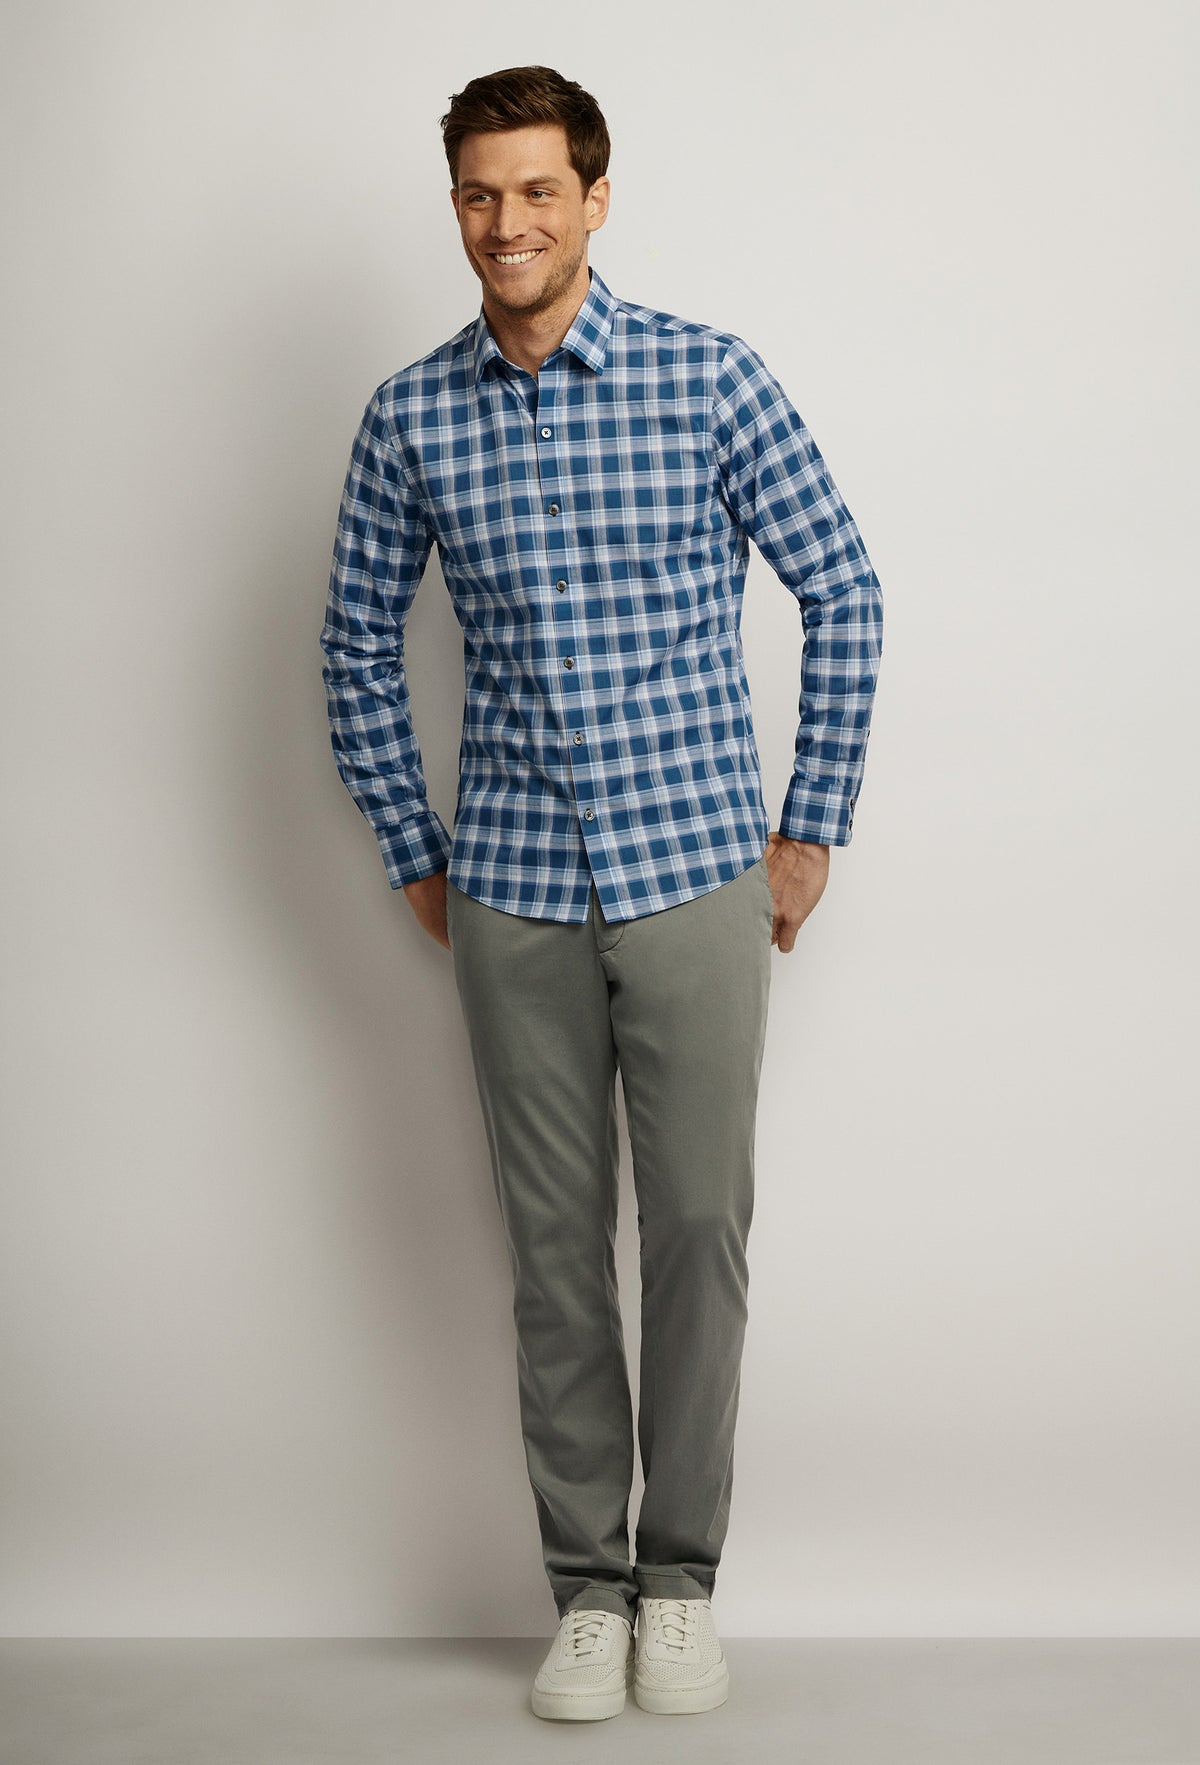 ZACHARY-PRELL-Albrecht-ShirtsModern-Menswear-New-Dress-Code